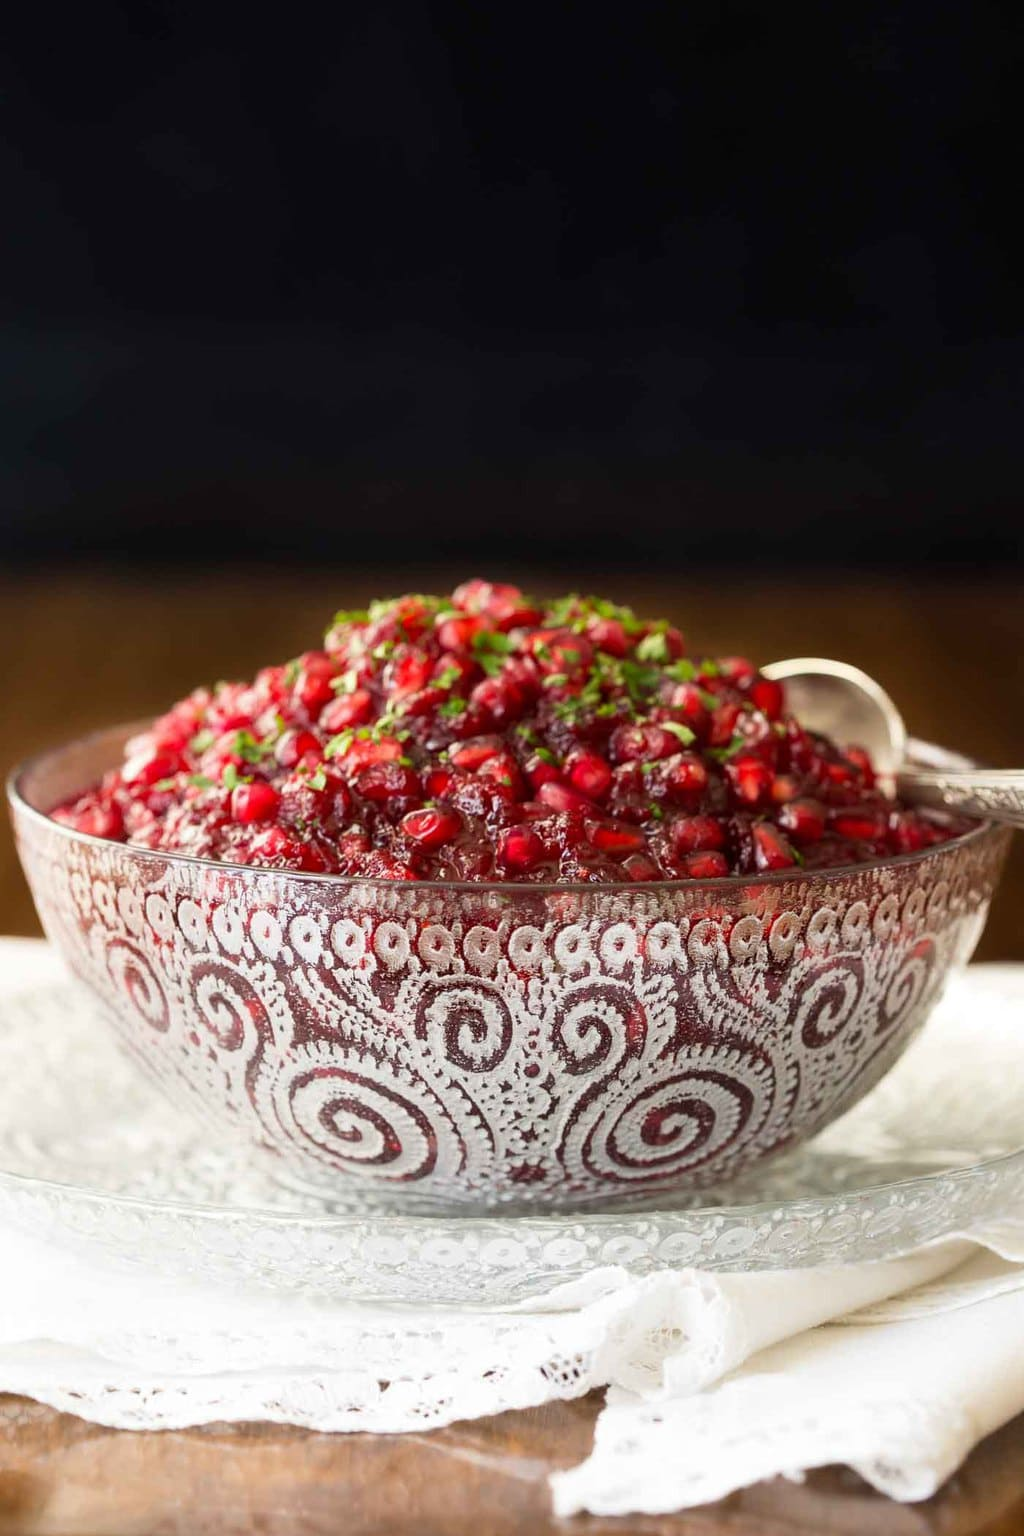 Photo of an etched glass bowl of Easy Cranberry Pomegranate Sauce on a white napkin sitting on a wood table.